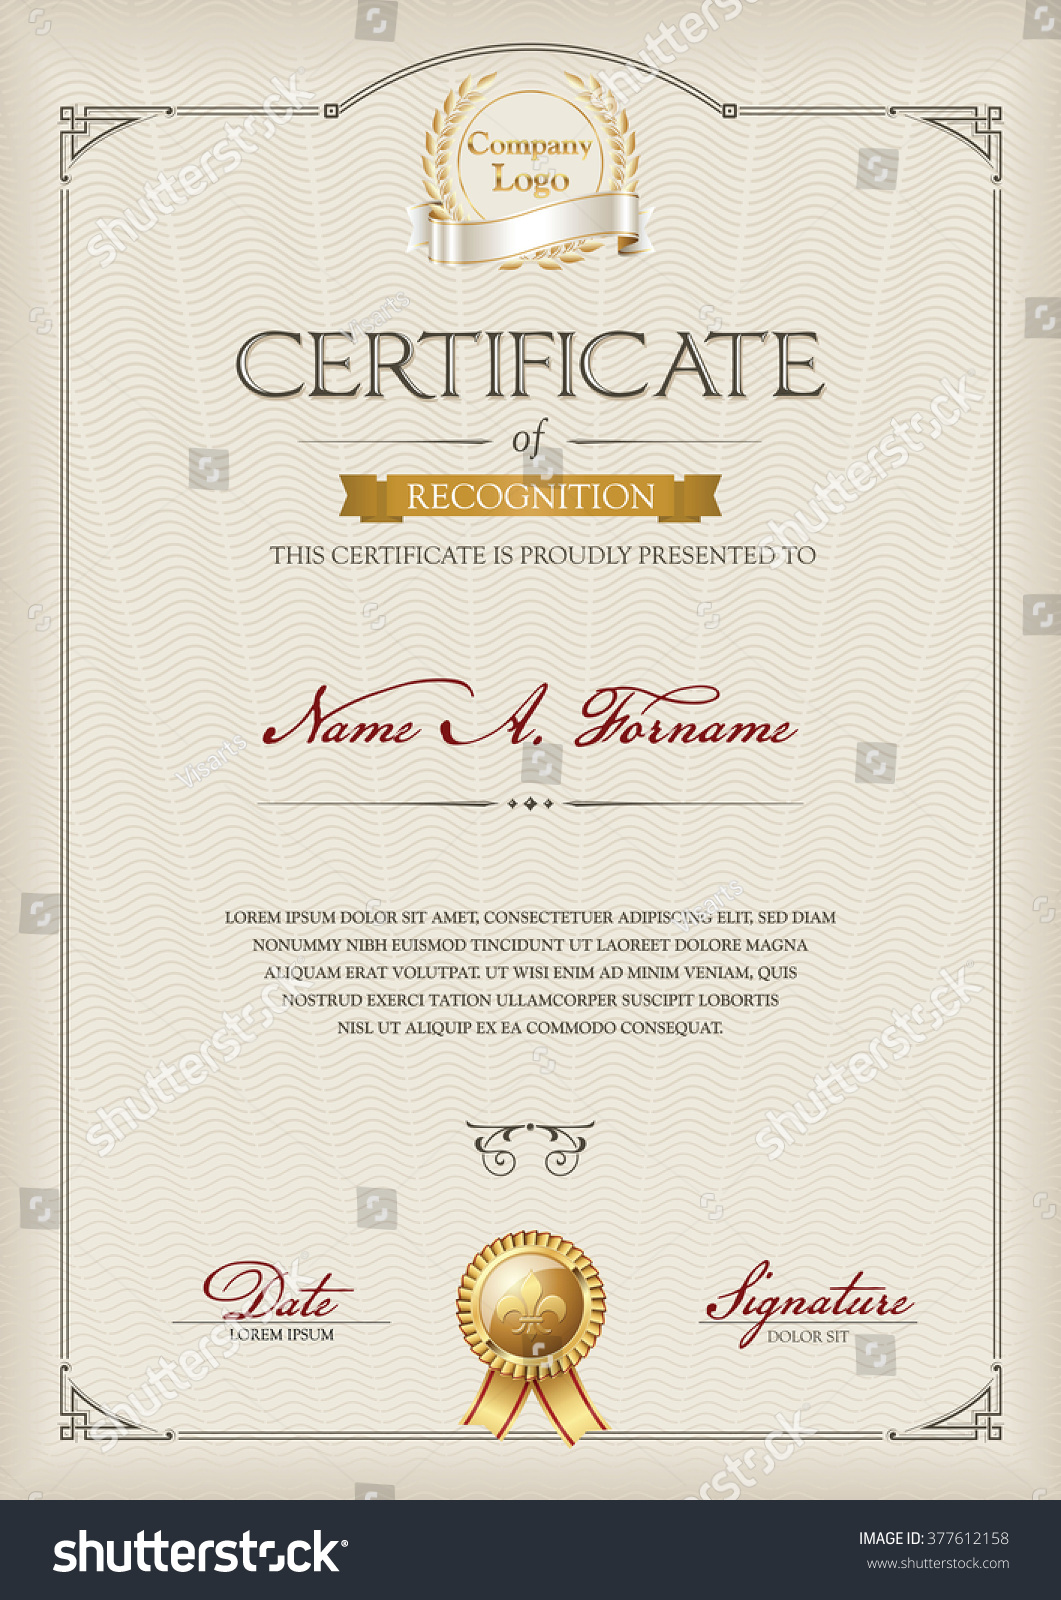 certificate recognition portrait vintage frame stock vector 377612158